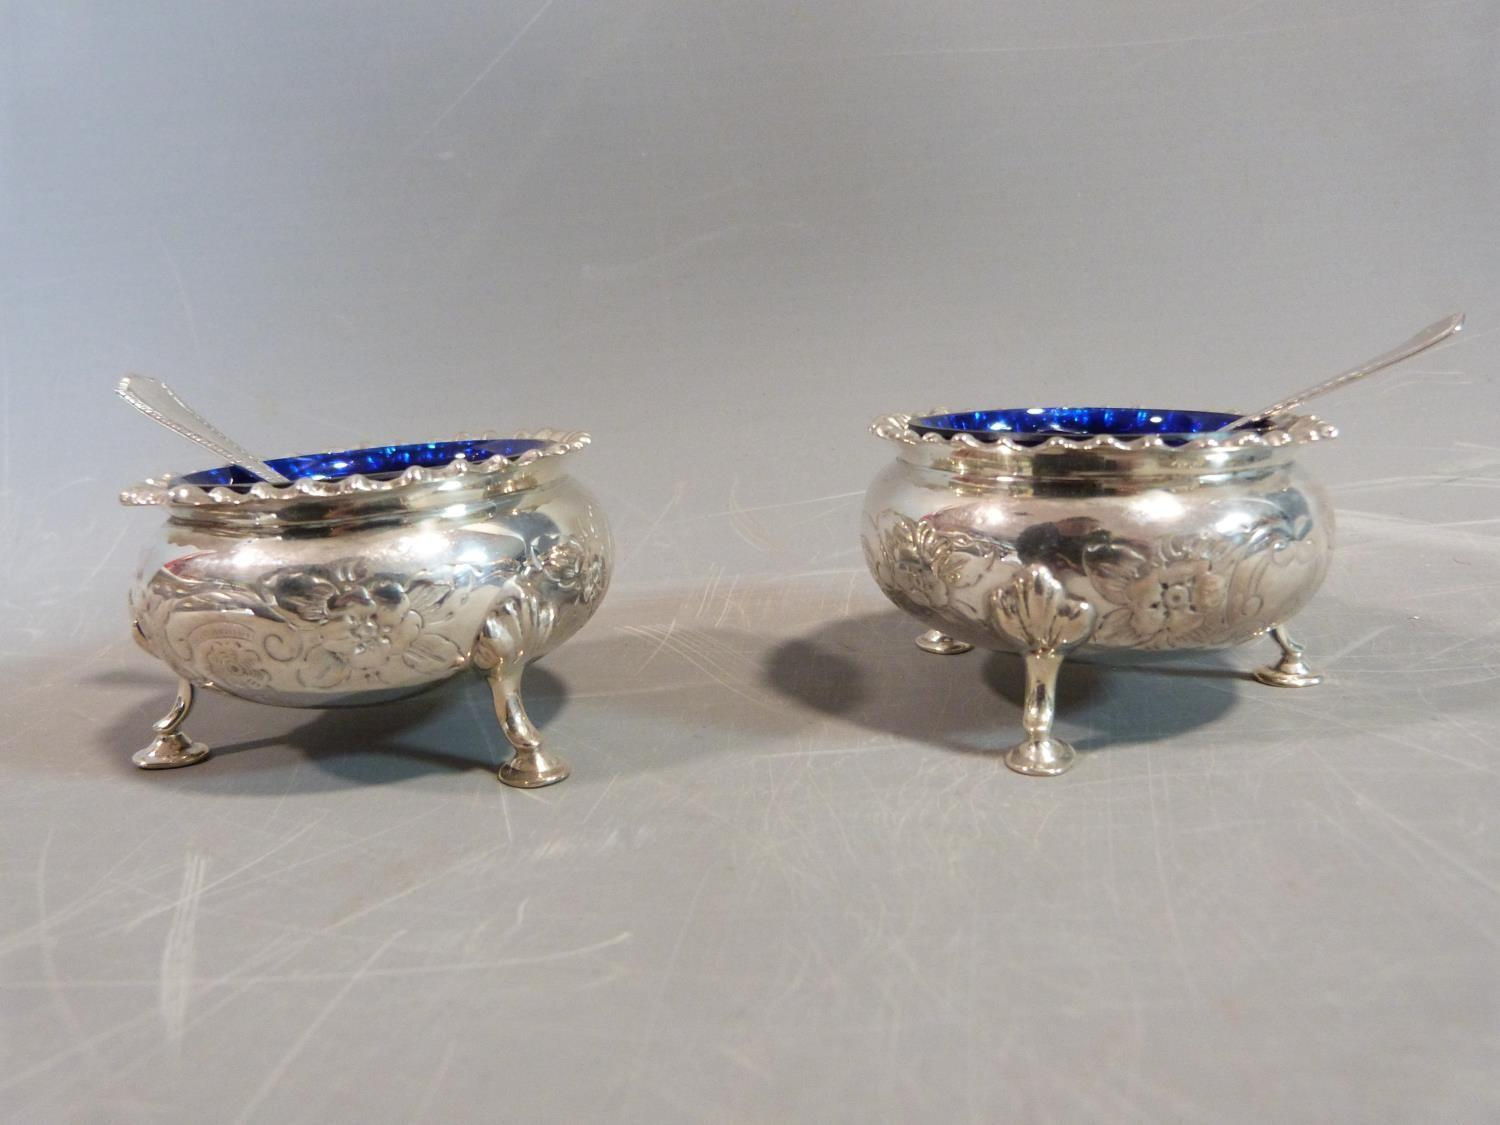 A silver floral cruet set. Hallmarked: CSG & Co. for Charles S Green & Co Ltd, Birmingham, 1954. Not - Image 9 of 11